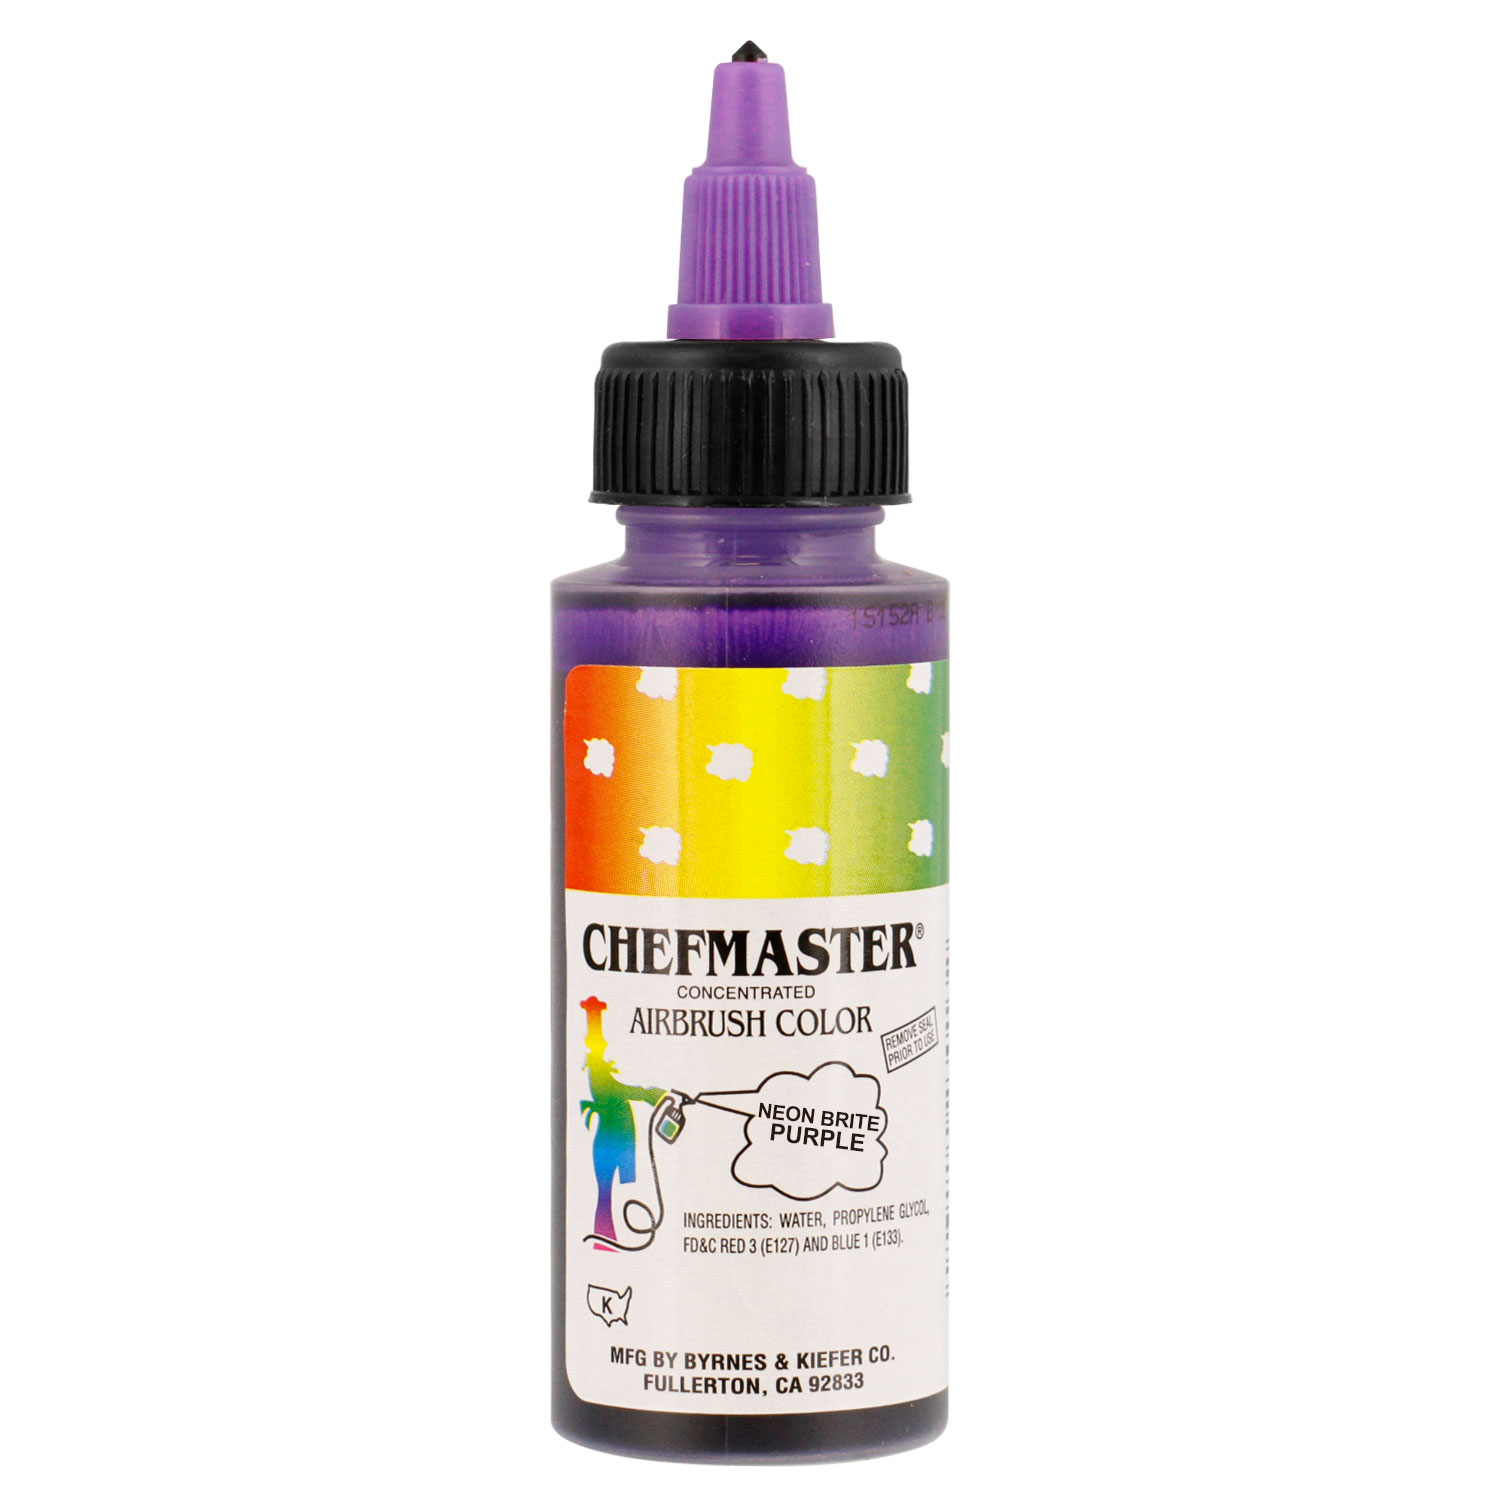 Chefmaster 2-Ounce Neon Brite Purple Airbrush Cake Decorating Food ...